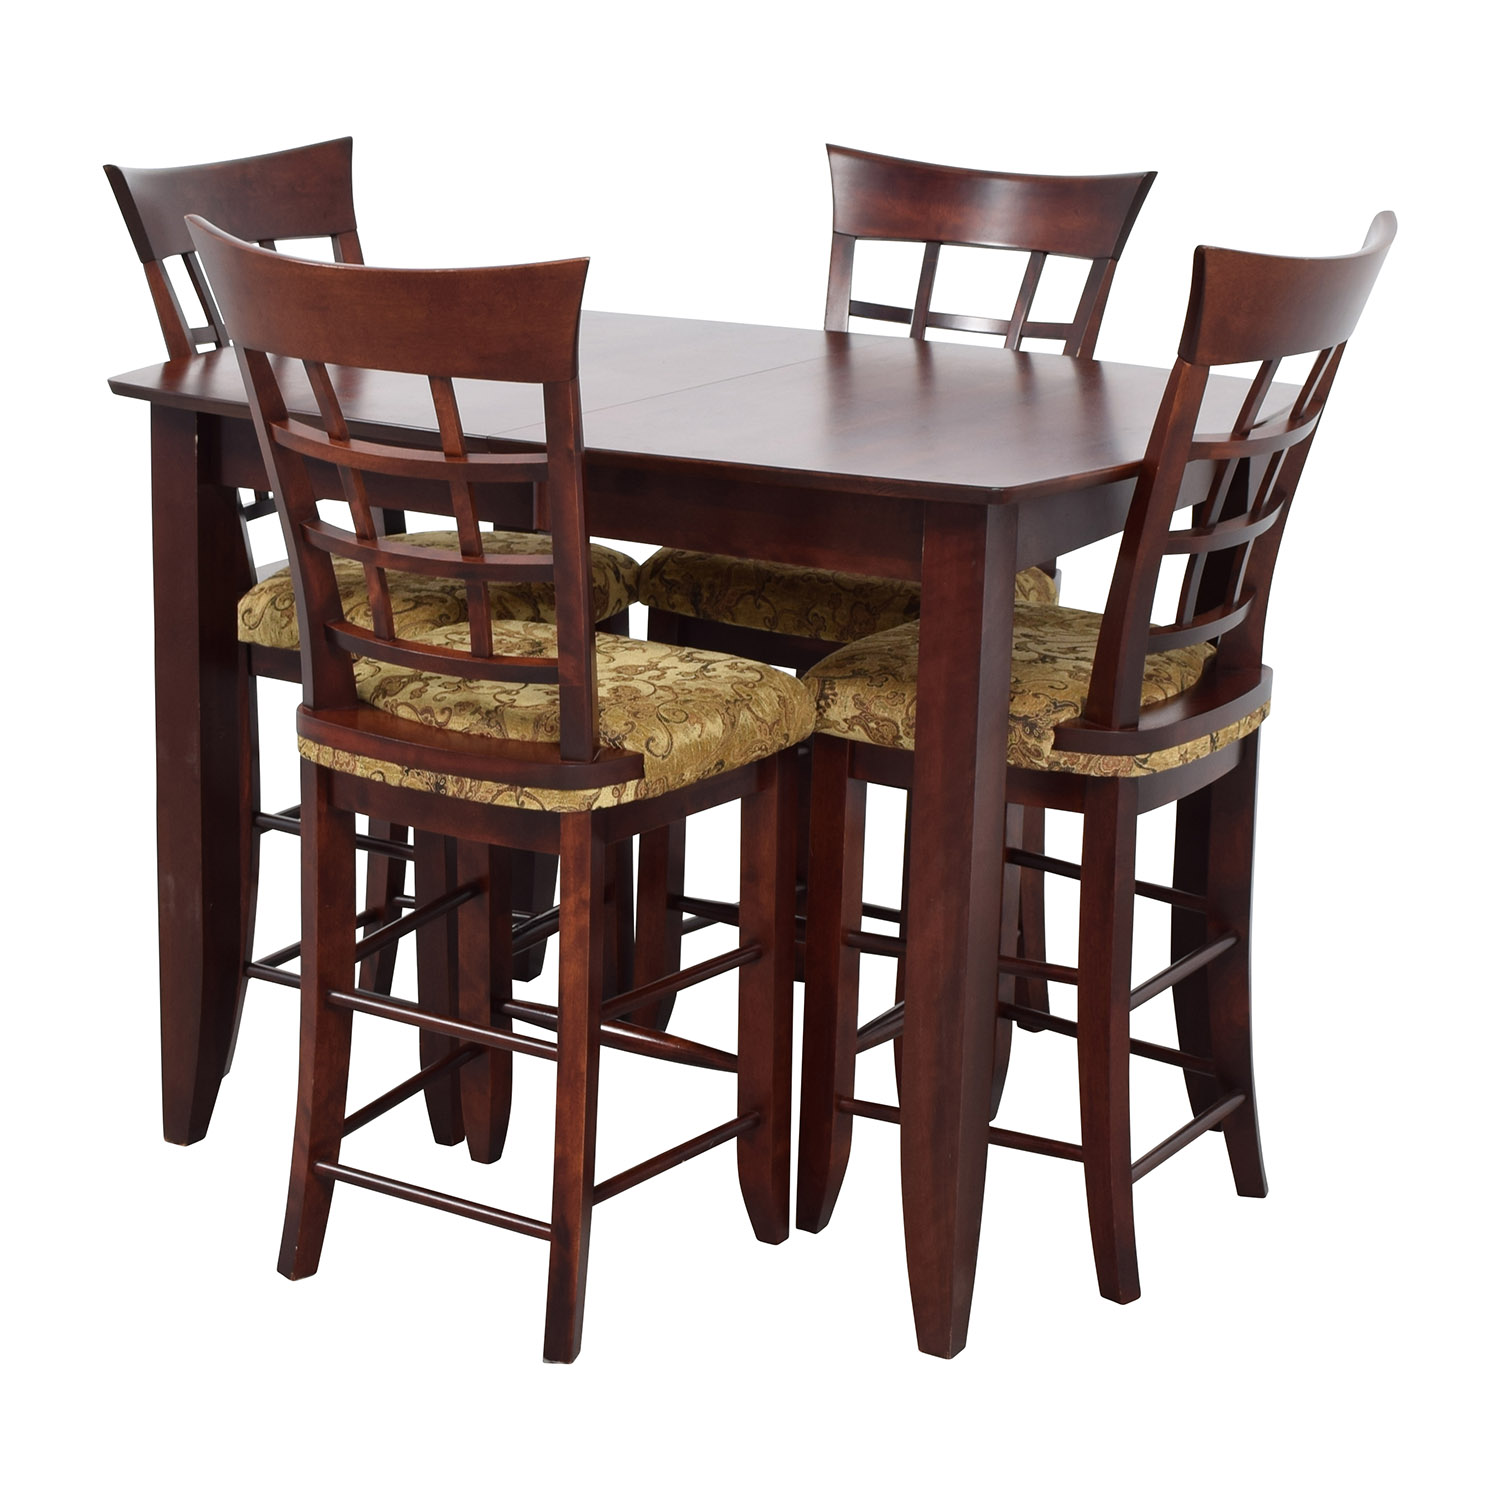 Dining Table With Chairs And Bench: High Top Dining Table With Four Chairs / Tables